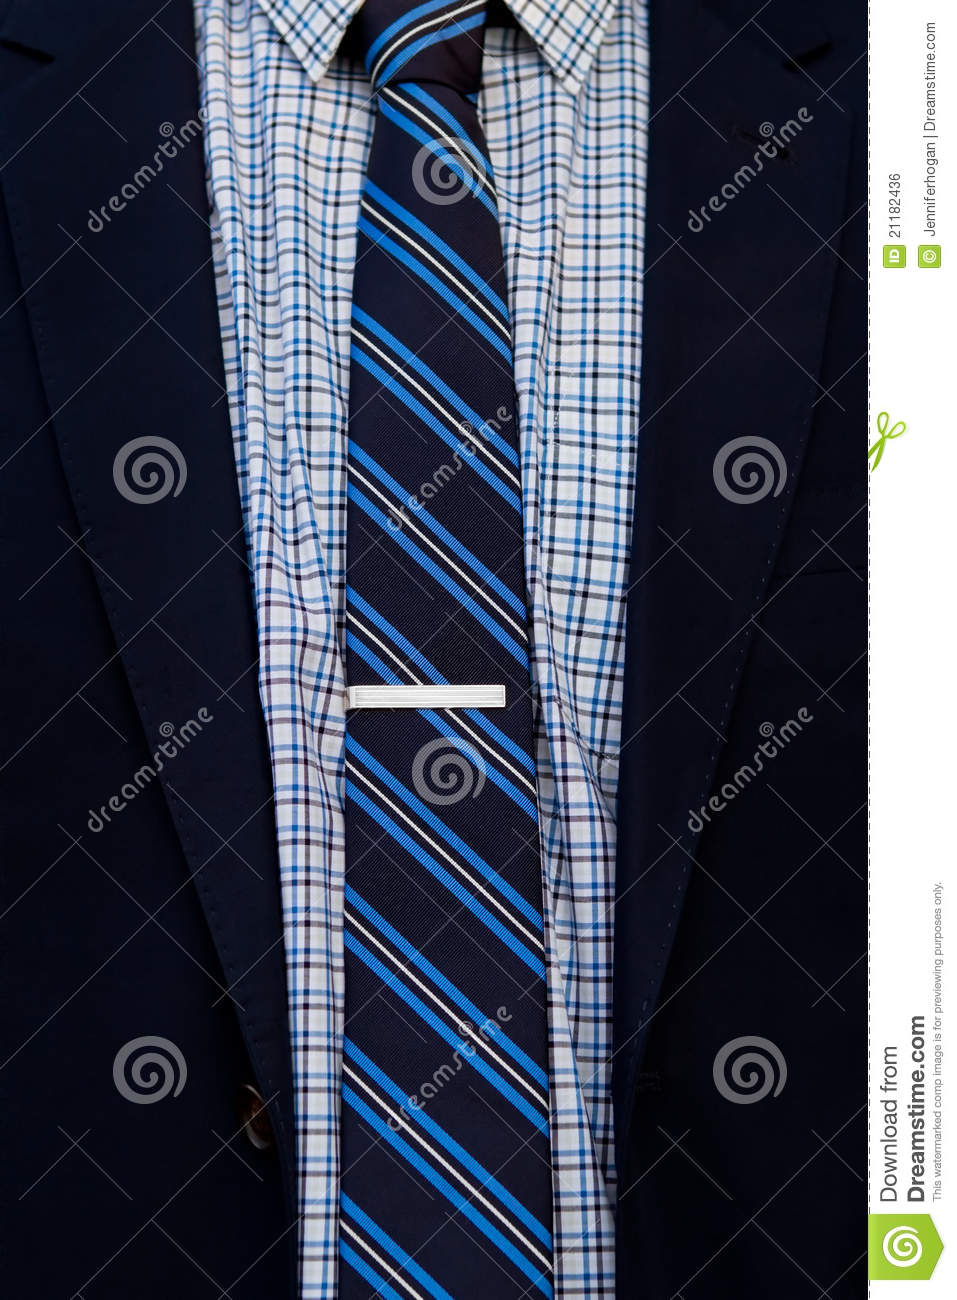 Close up of suit and tie with tie clip